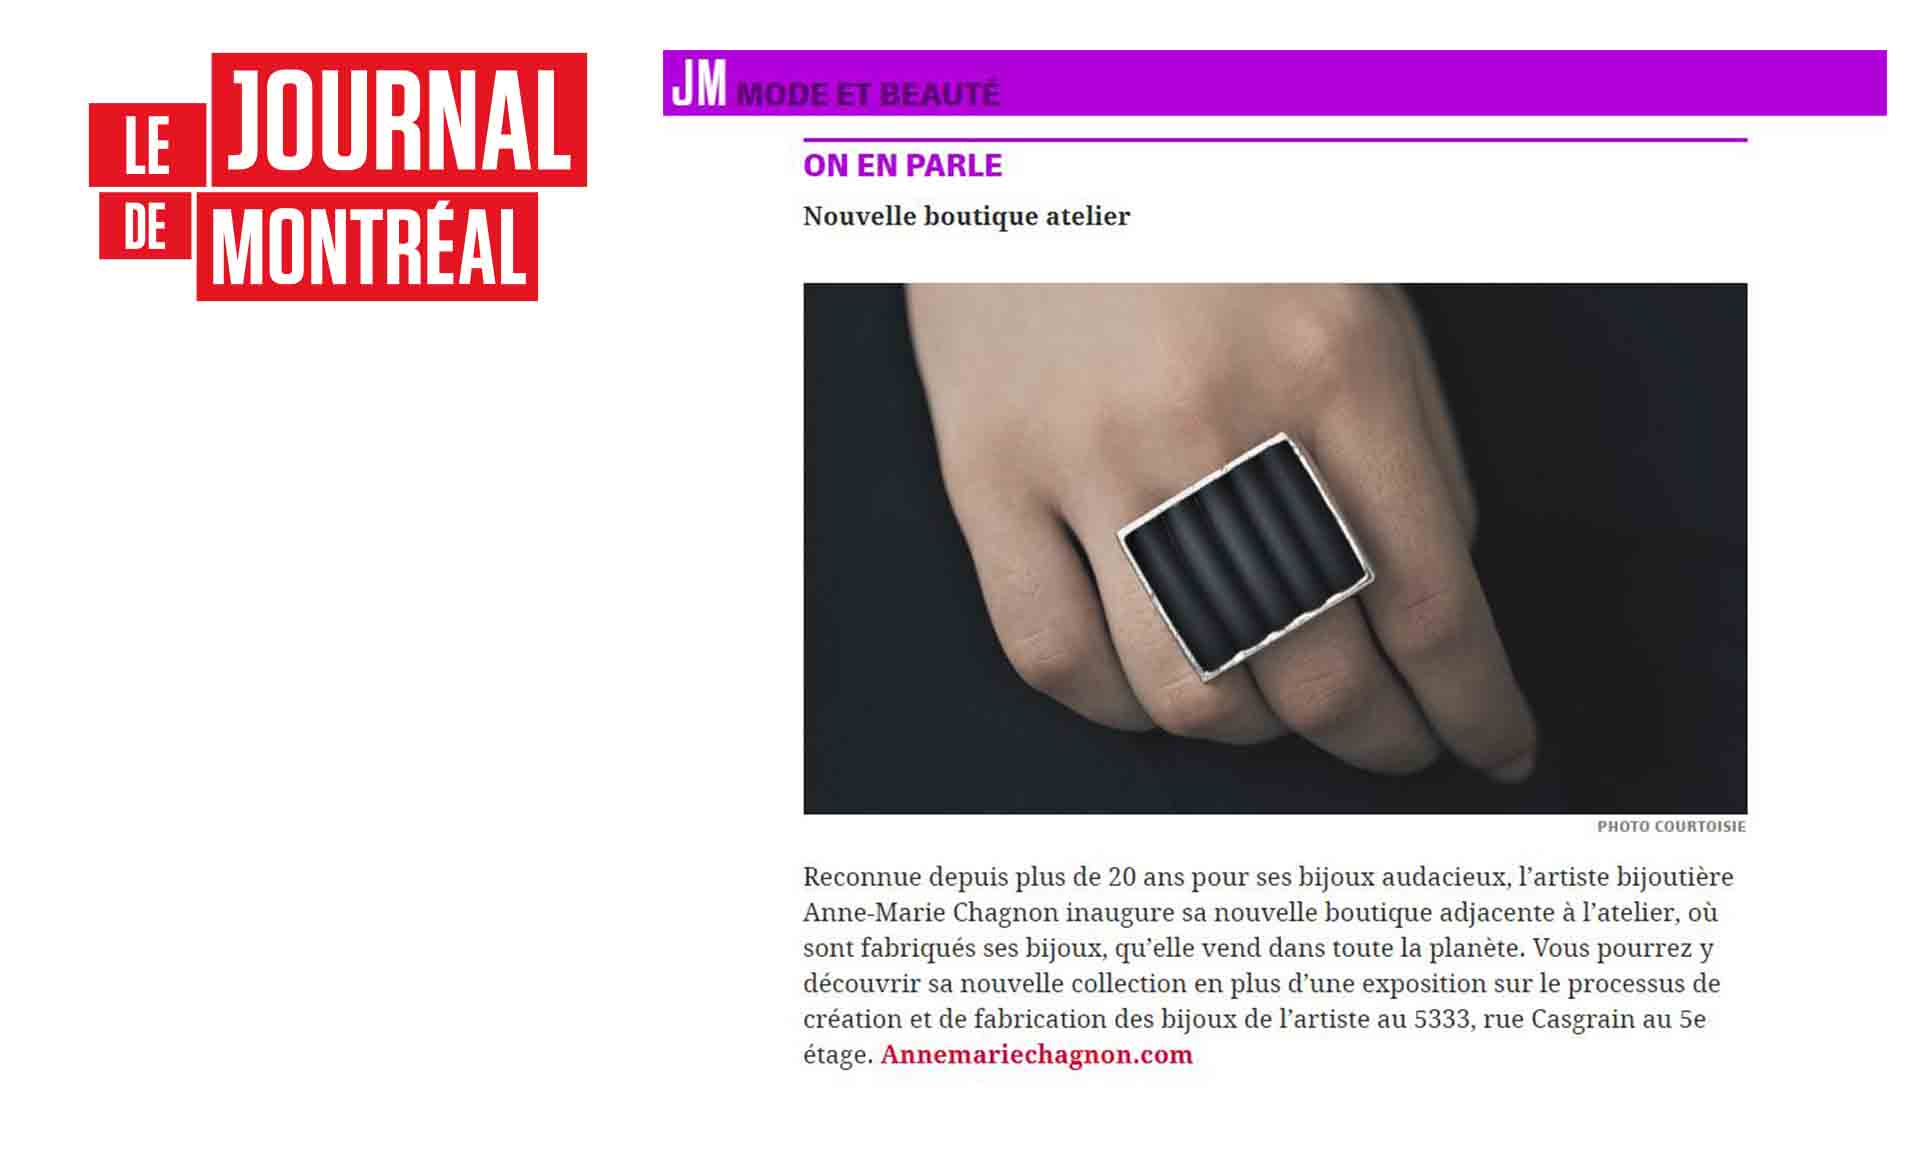 Inauguration of the new studio boutique// LE JOURNAL DE MONTREAL speaks about it